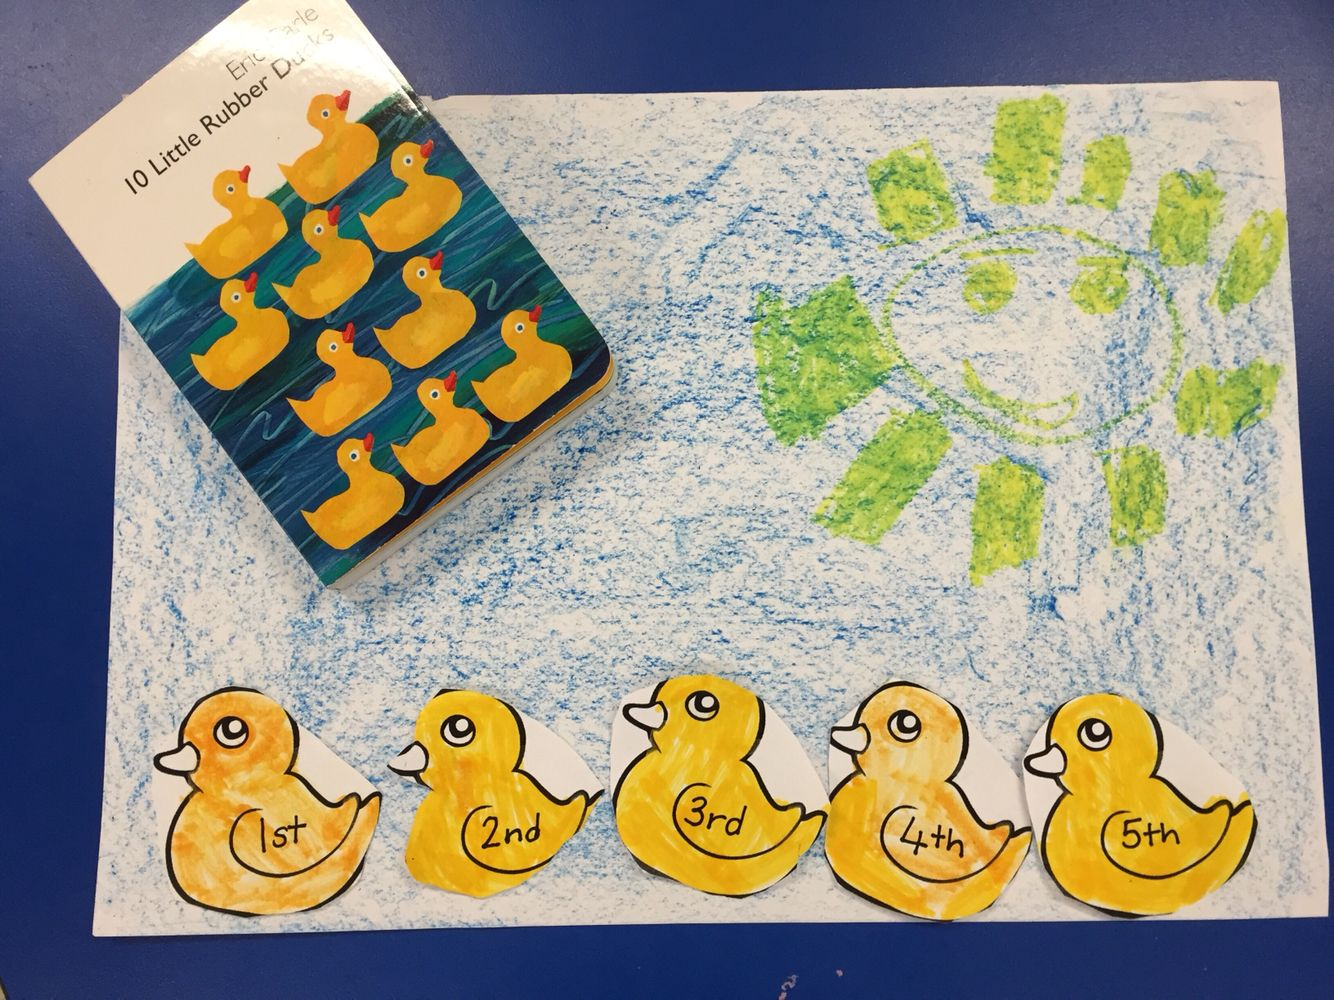 Ordinal Numbers We Read 10 Little Rubber Ducks By Eric Carle Then We Ordered The Ordinal Number Ducks Kindergarten Classroom Teaching Math Eric Carle